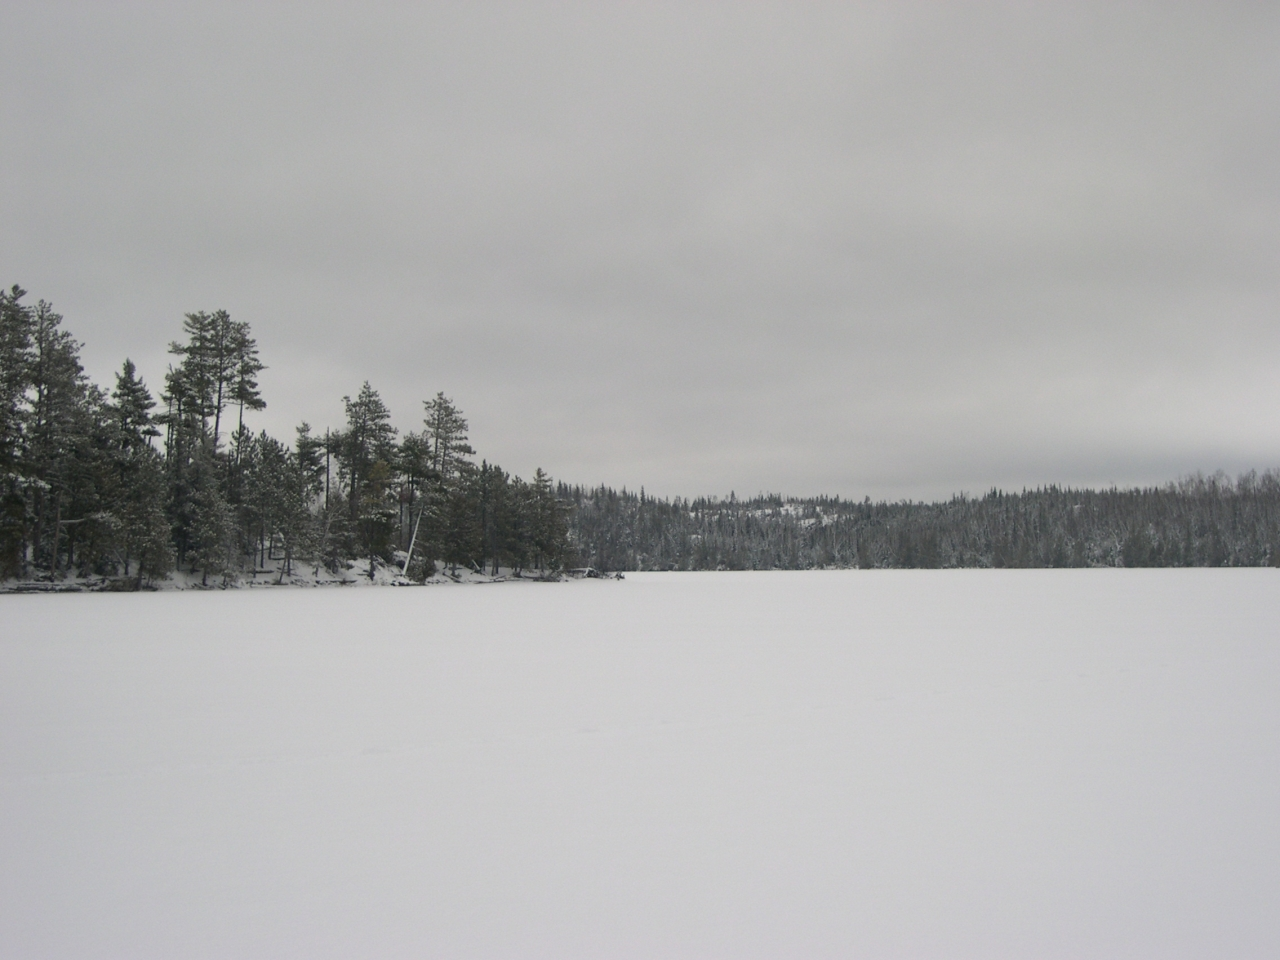 Newfound Lake Bwcaw